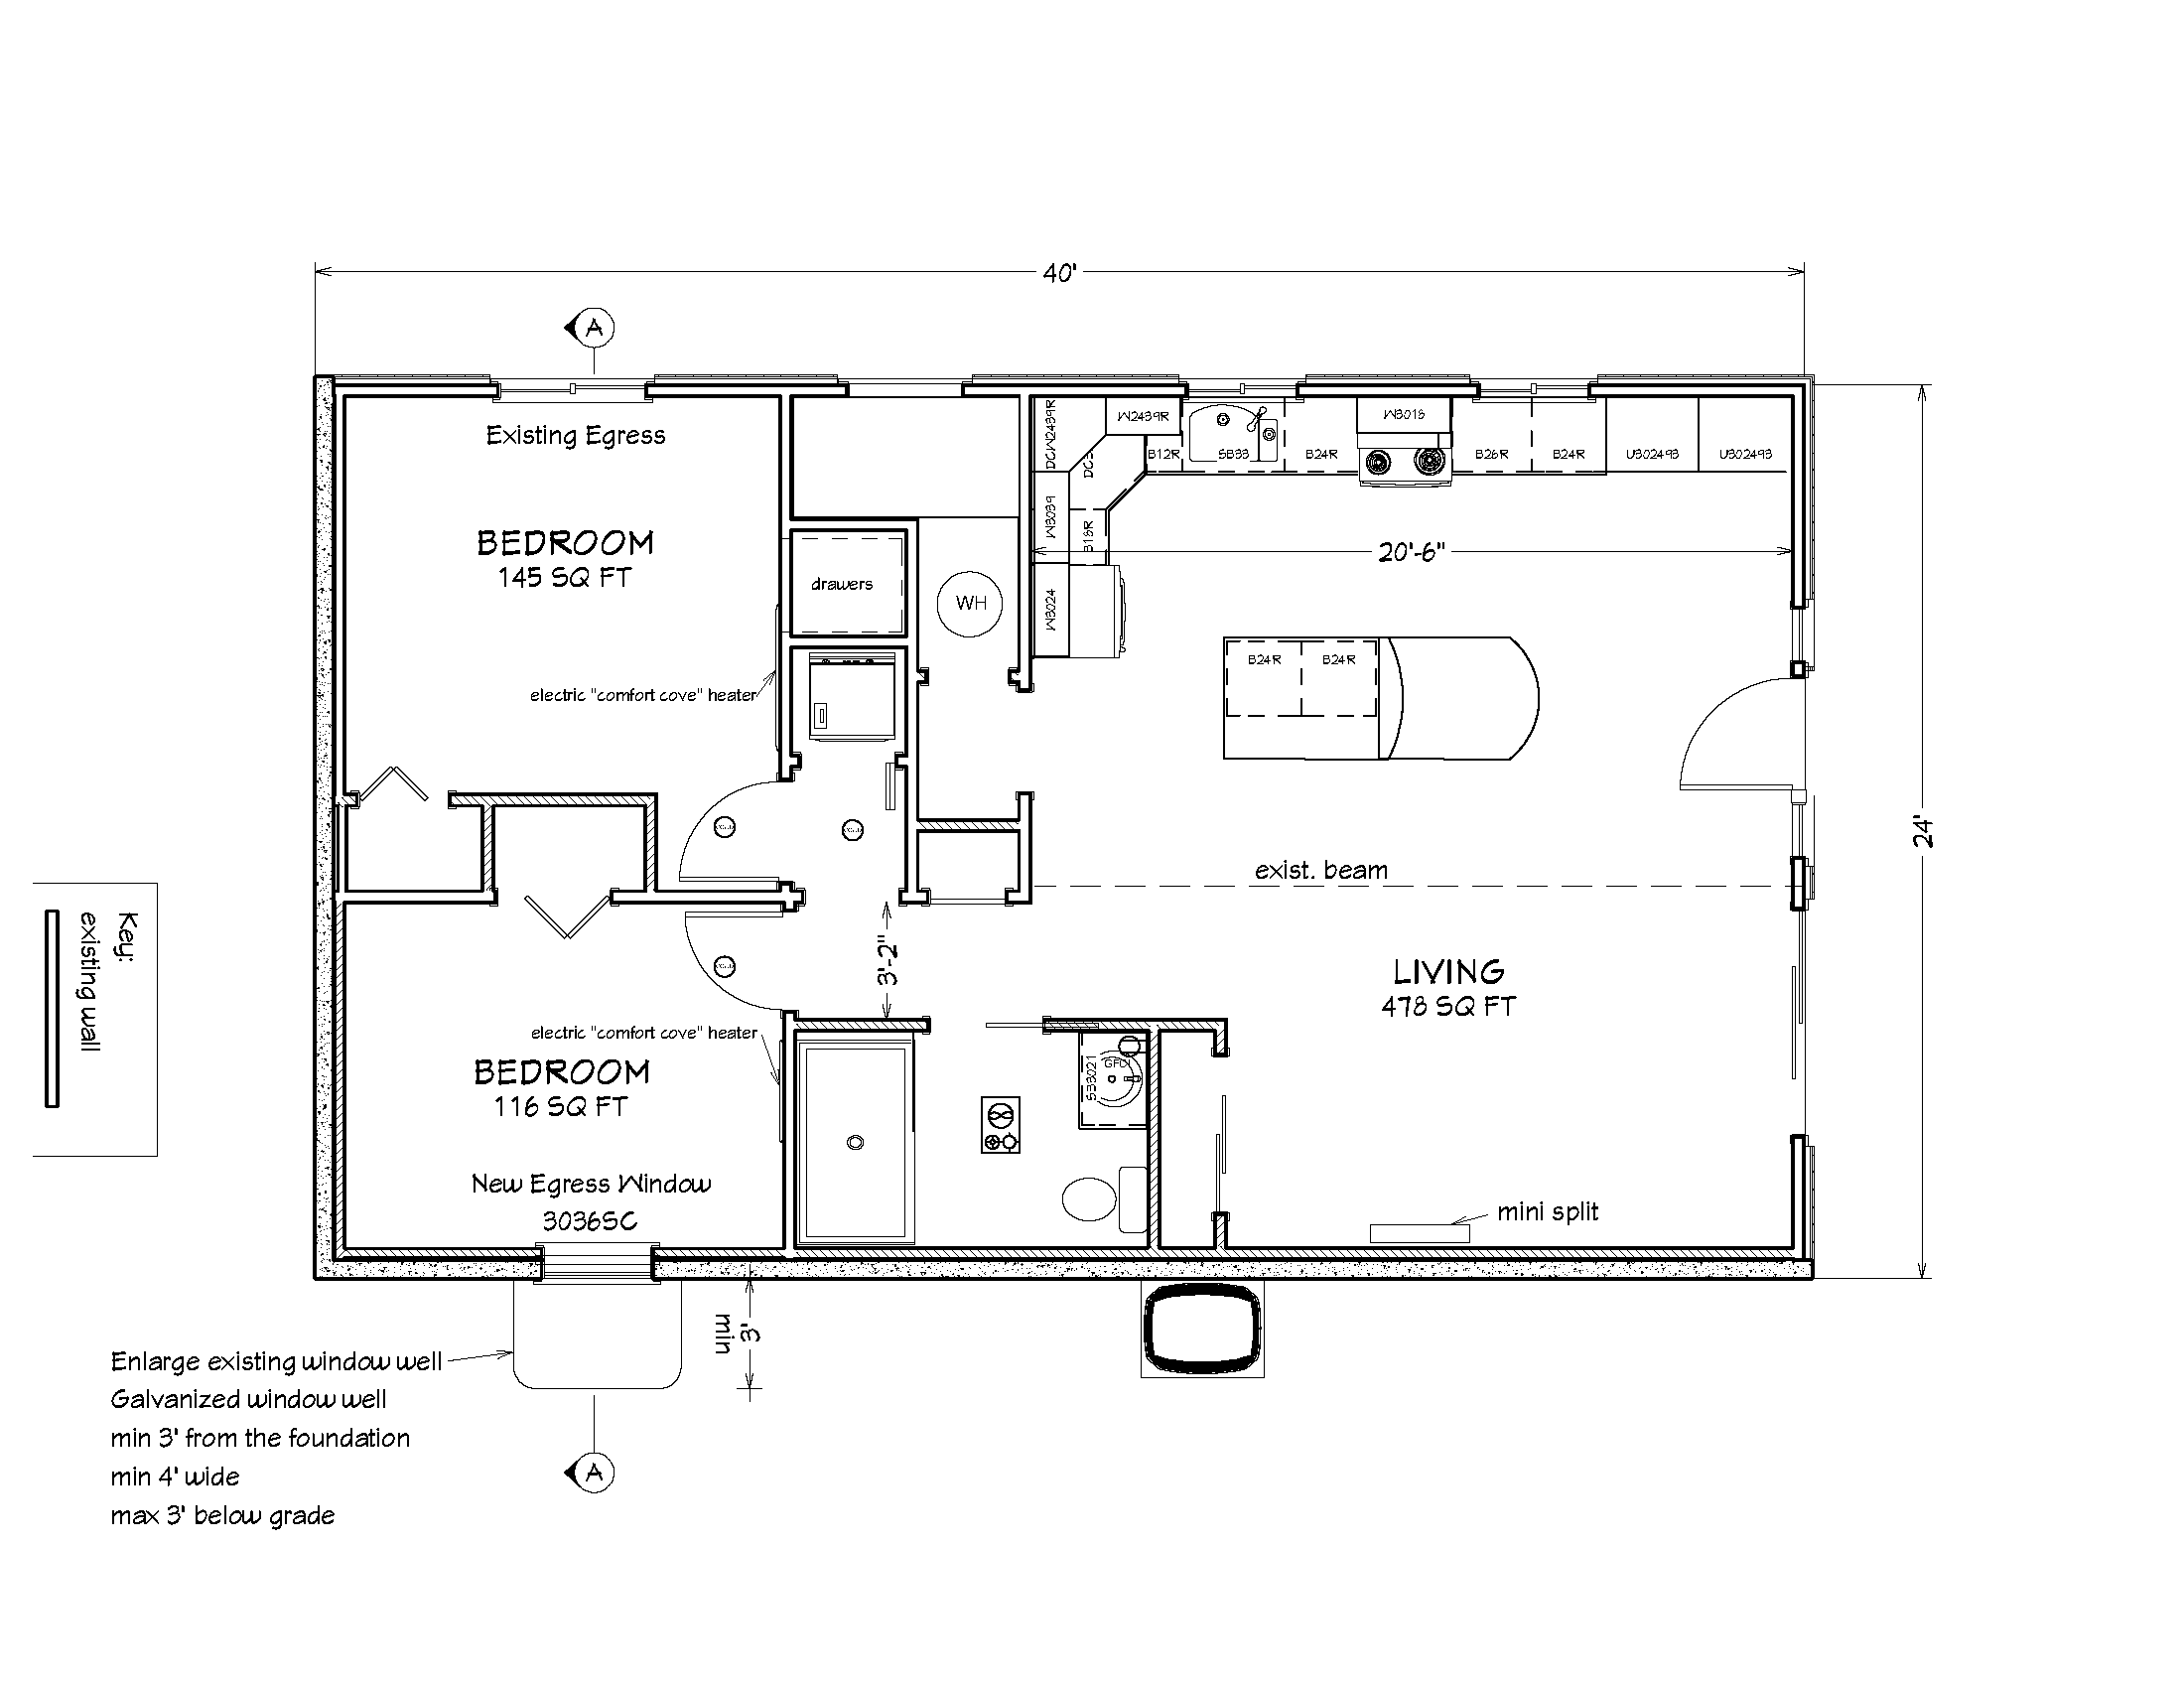 And here's the conventional 2D floorplan of the ADU